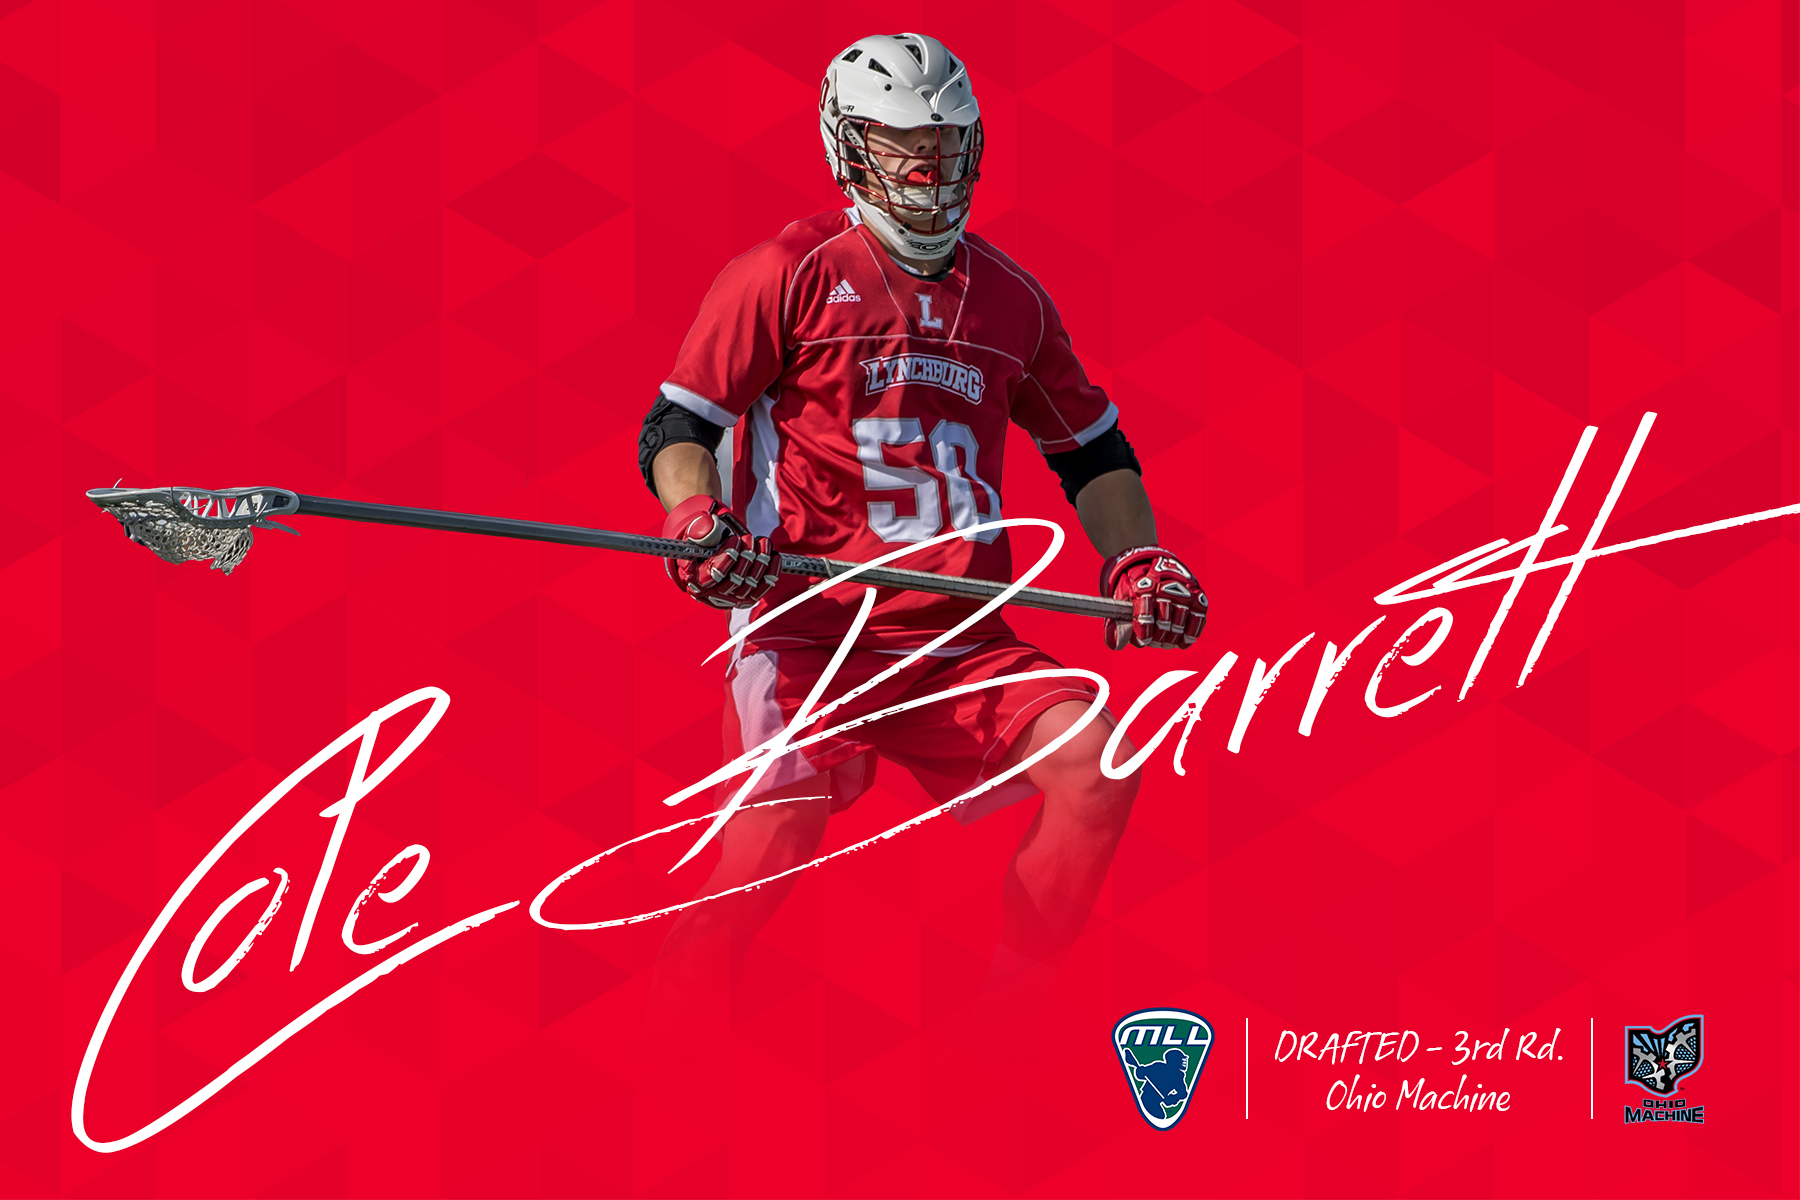 Graphic on red background of Cole Barrett uniform